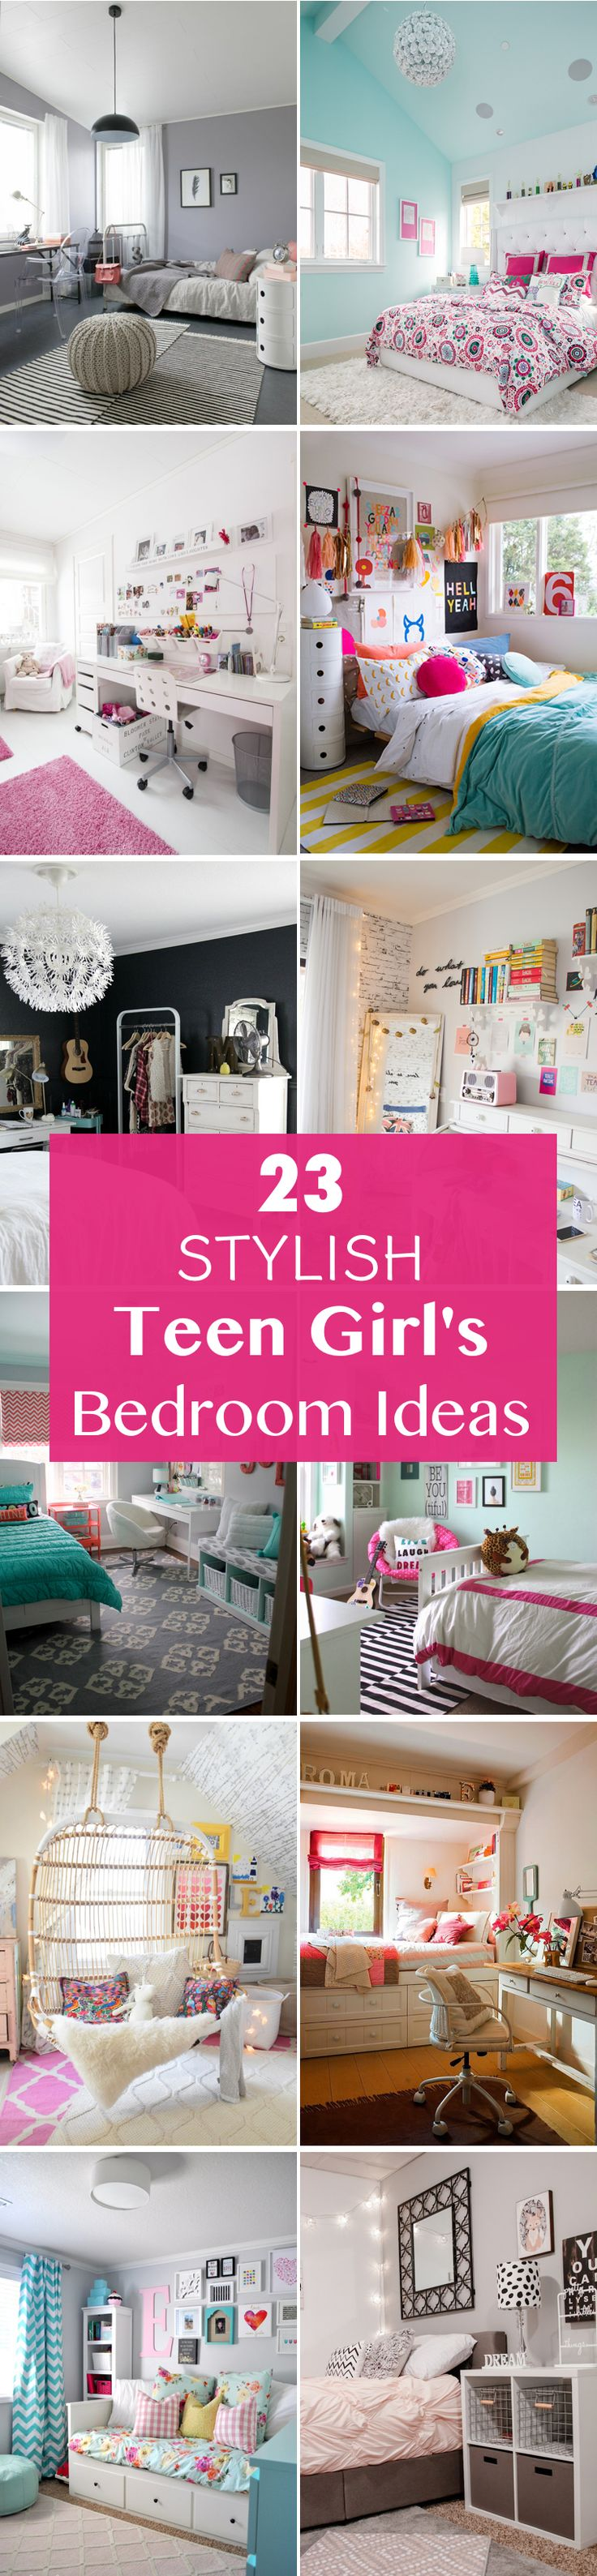 Ideas For Teen Bedrooms best 25+ unique teen bedrooms ideas on pinterest | vintage teen